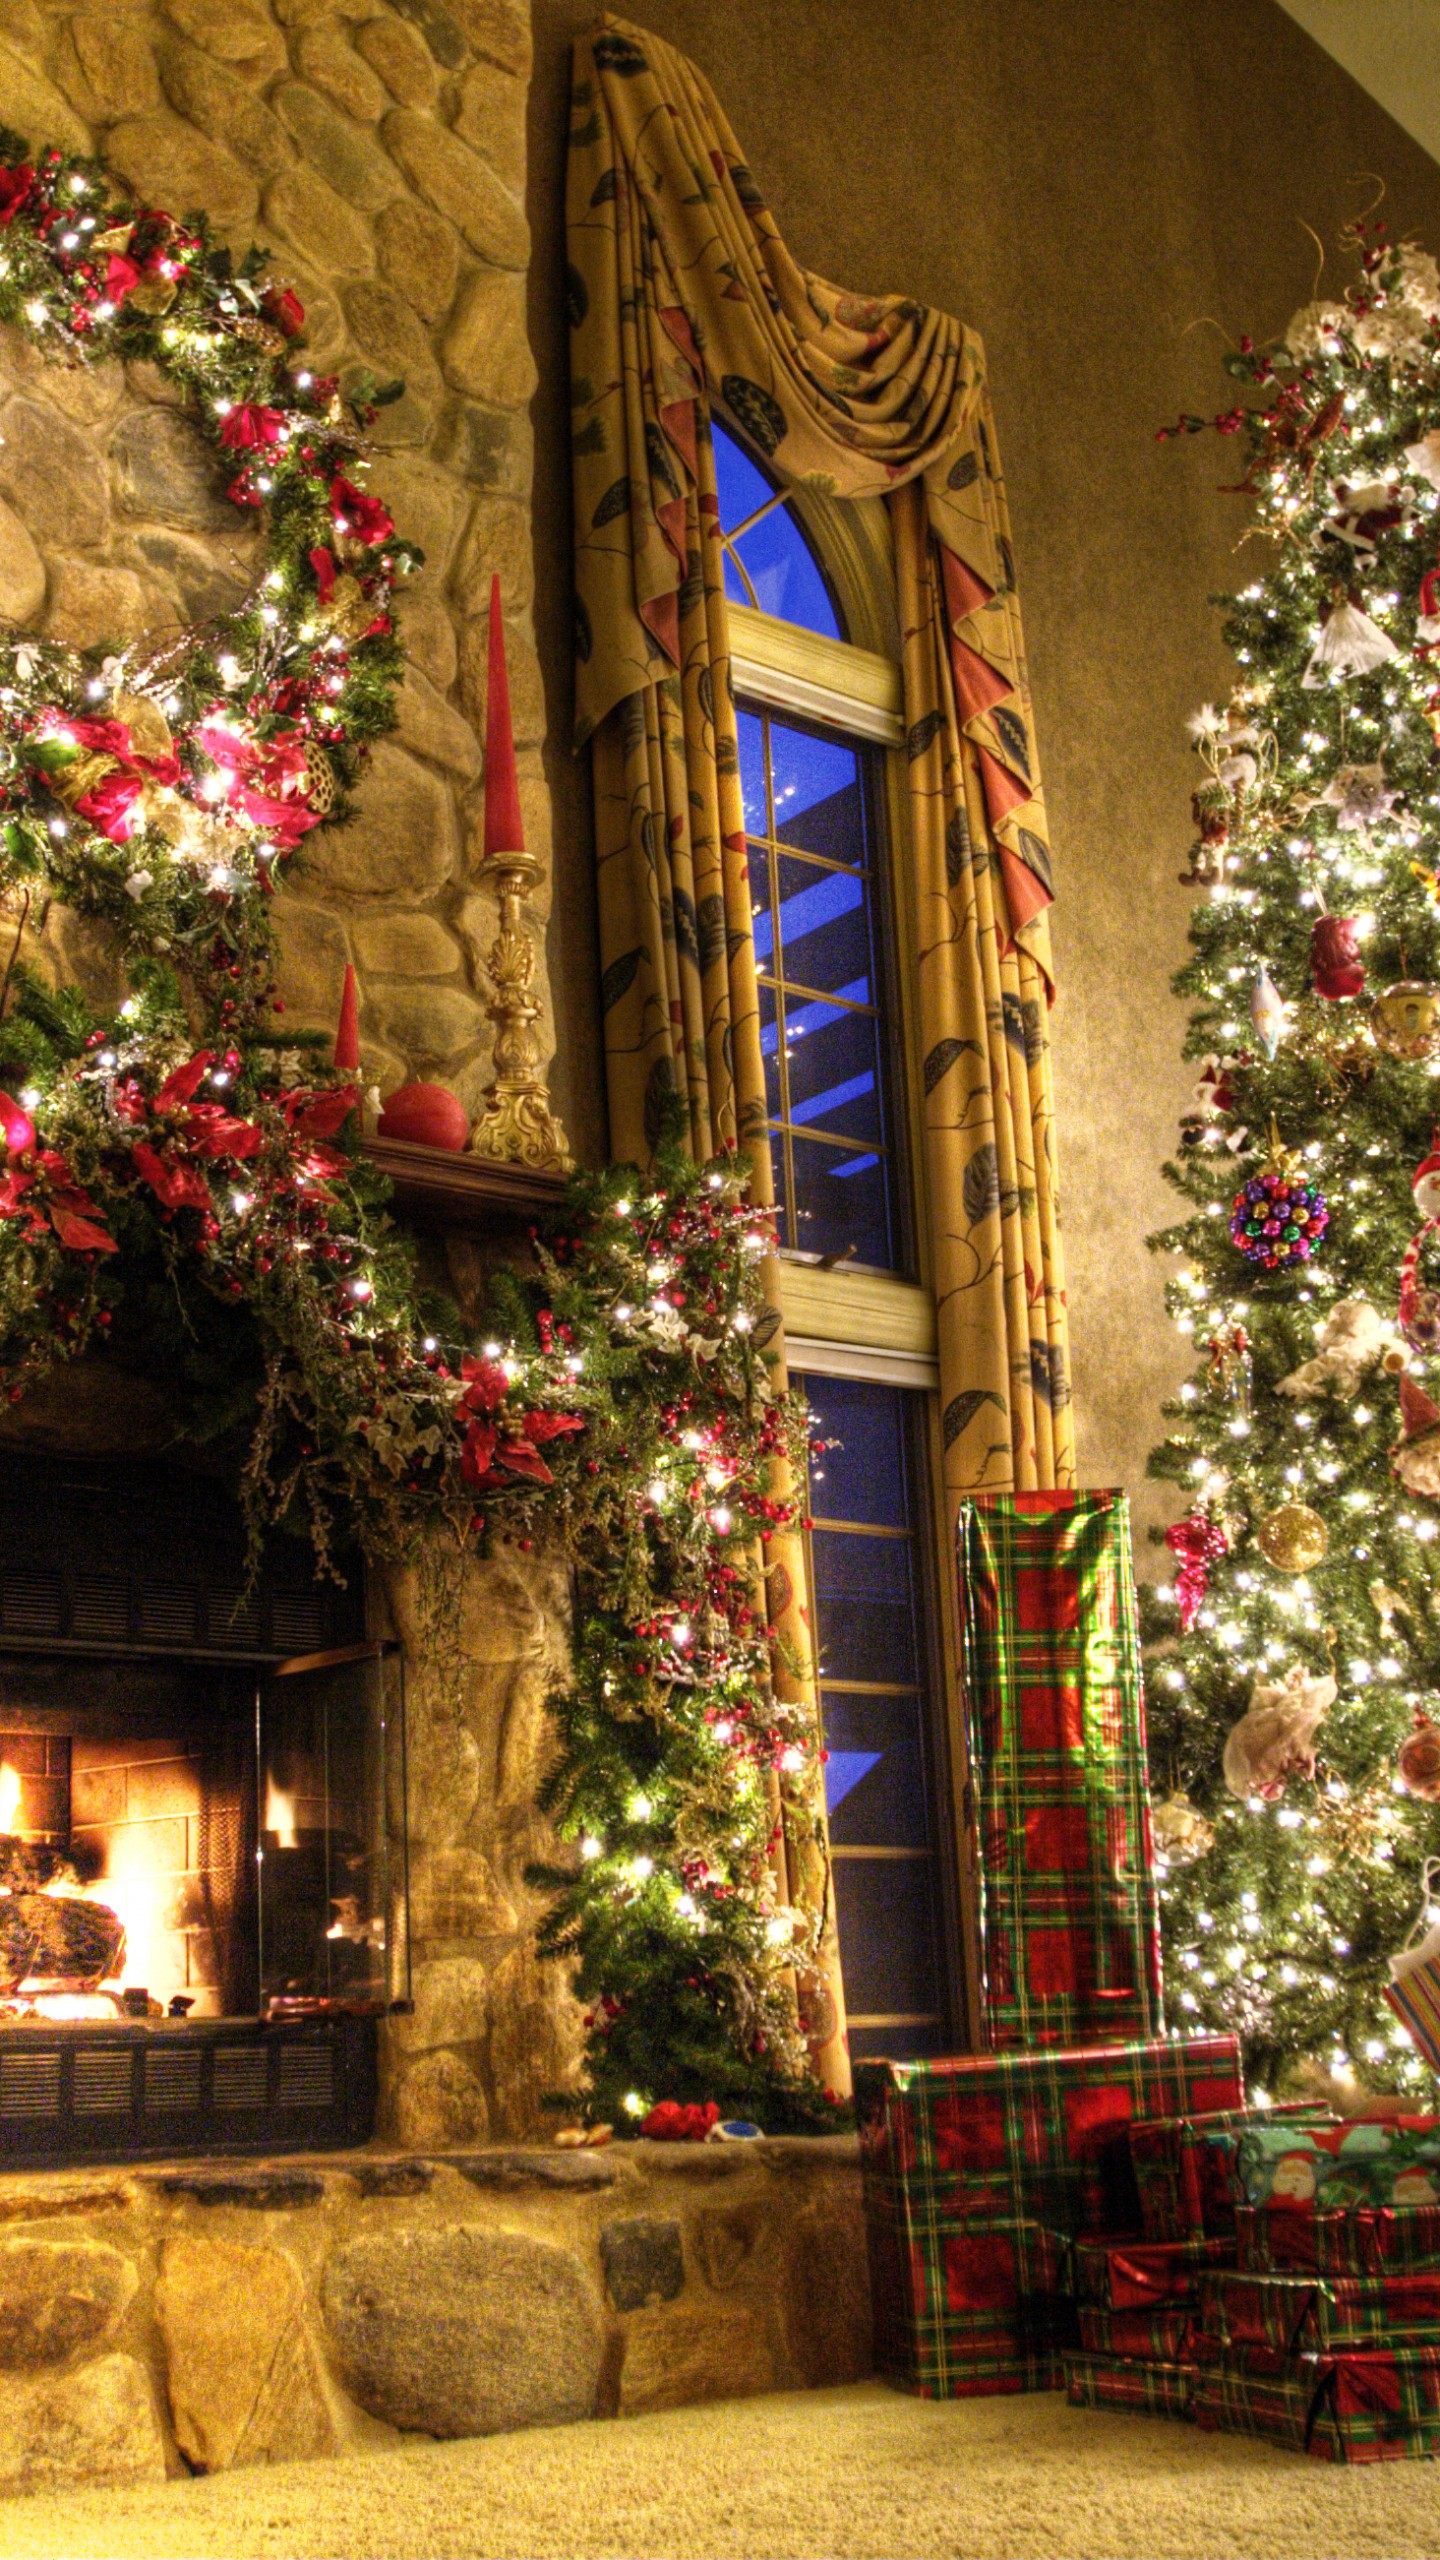 Free Cute Images Wallpapers Wallpaper New Year Fireplace Decor Fir Tree Fire